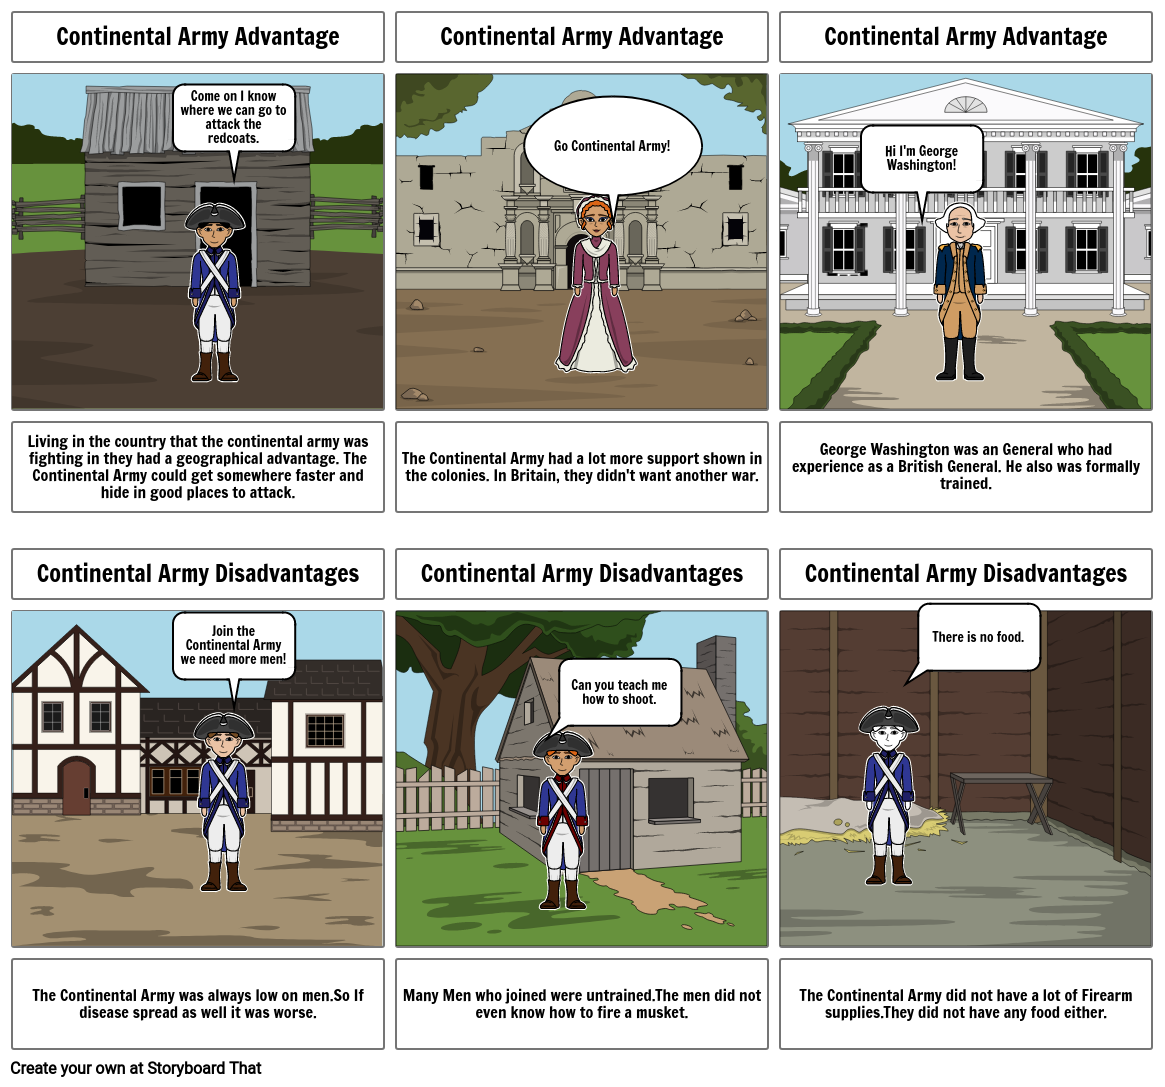 Advantages and Disadvantages of Continental Army